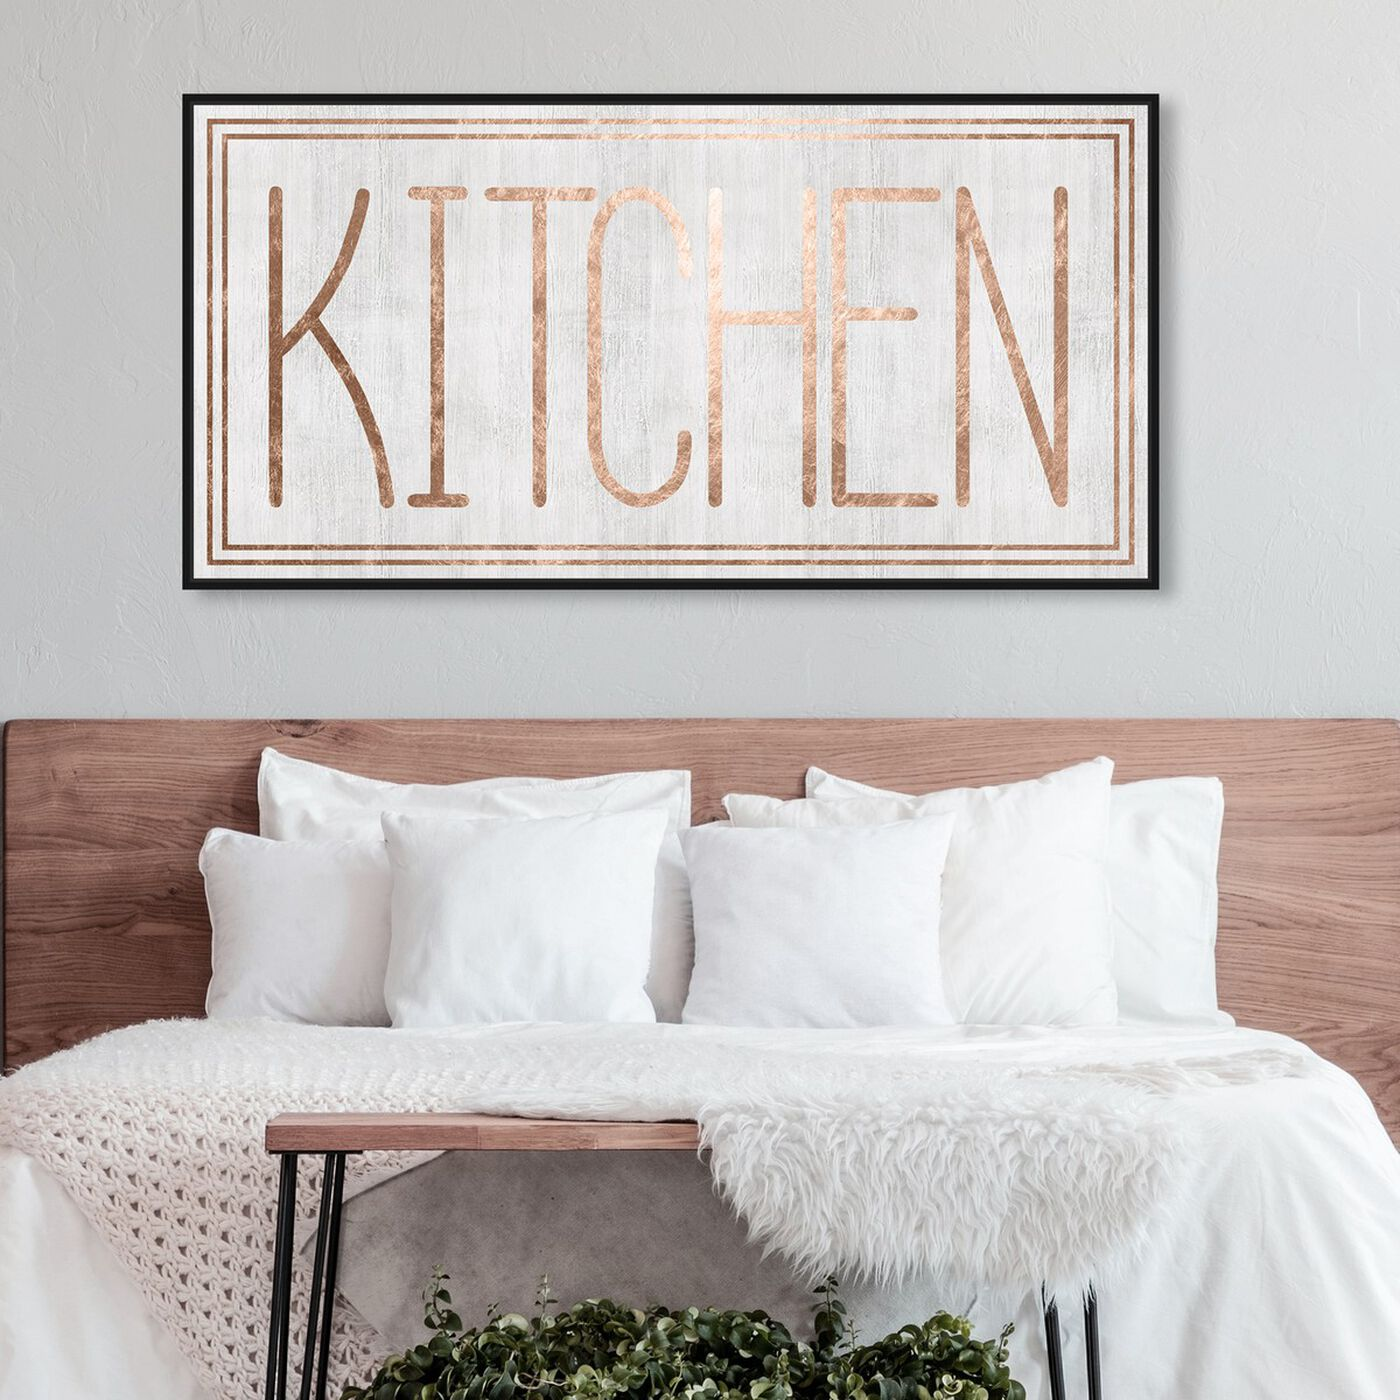 Hanging view of Kitchen featuring food and cuisine and kitchen art.